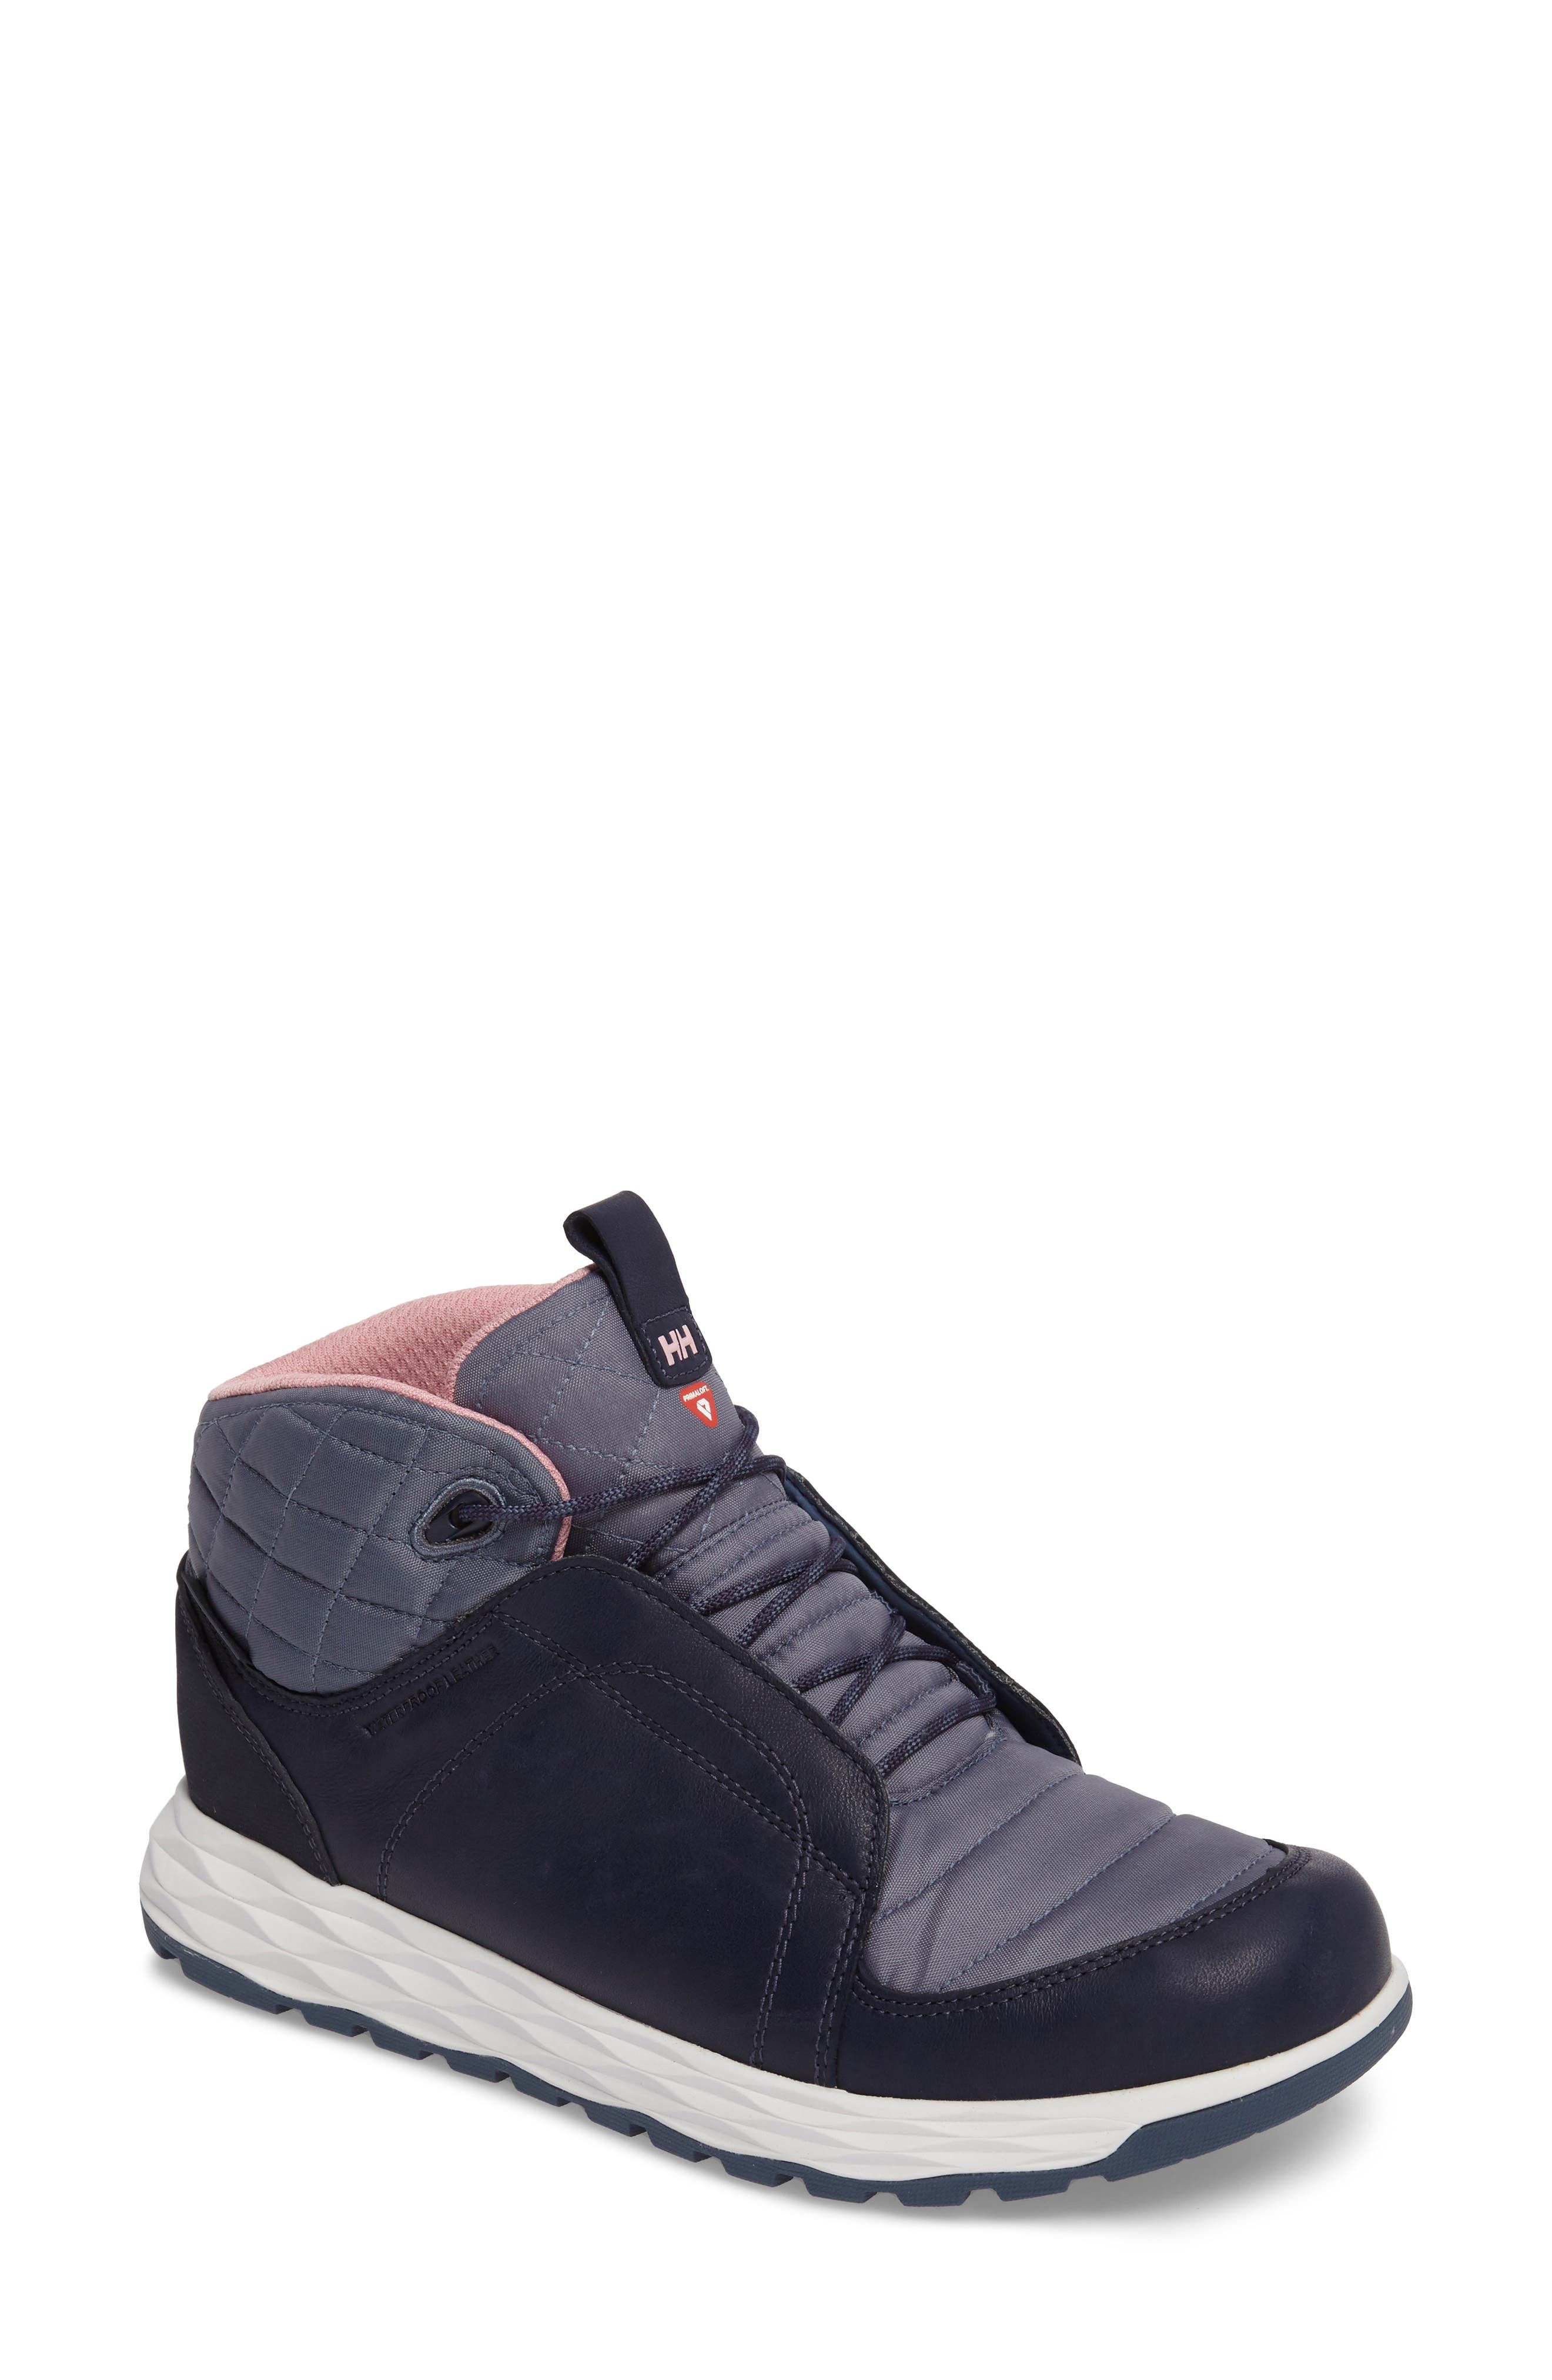 Main Image - Helly Hansen Ten Below Waterproof High Top Sneaker (Women)